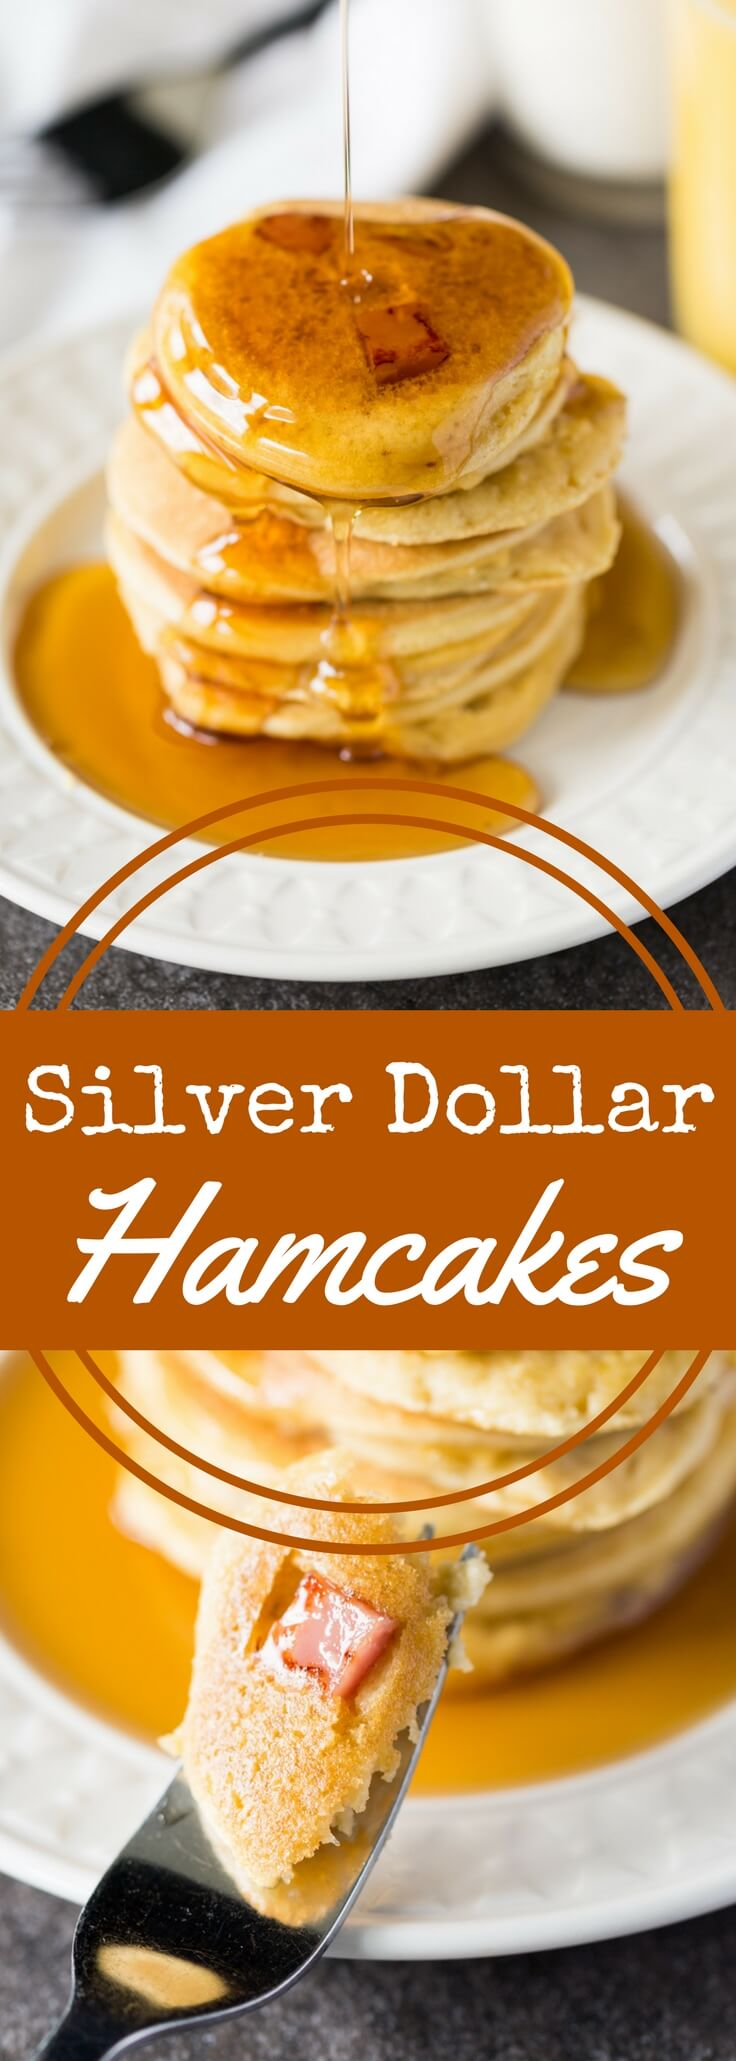 Silver dollar hamcakes are tiny pancakes with ham! These miniature sweet and savory pancakes are equally delicious for breakfast or dinner.